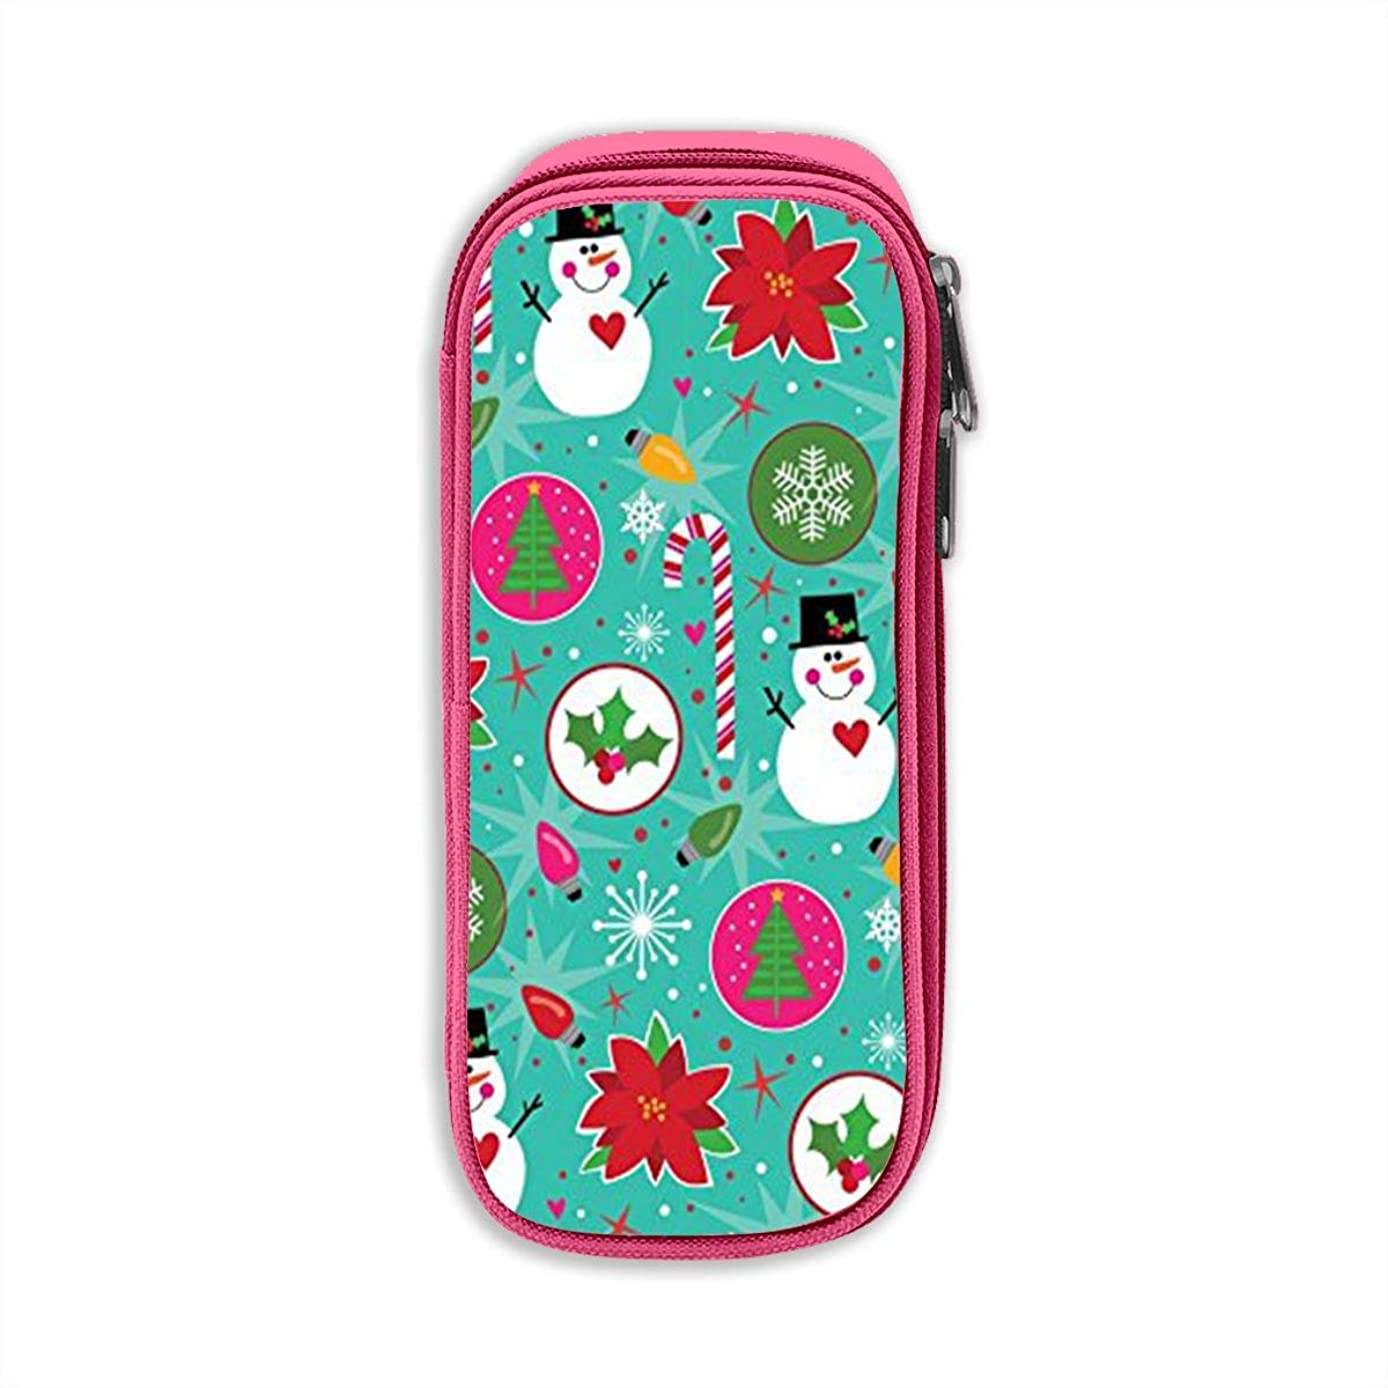 Christmas Snowman Pen Case Pencil Pouch Bag for Student Office Cosmetic Makeup Bag Storage Pink